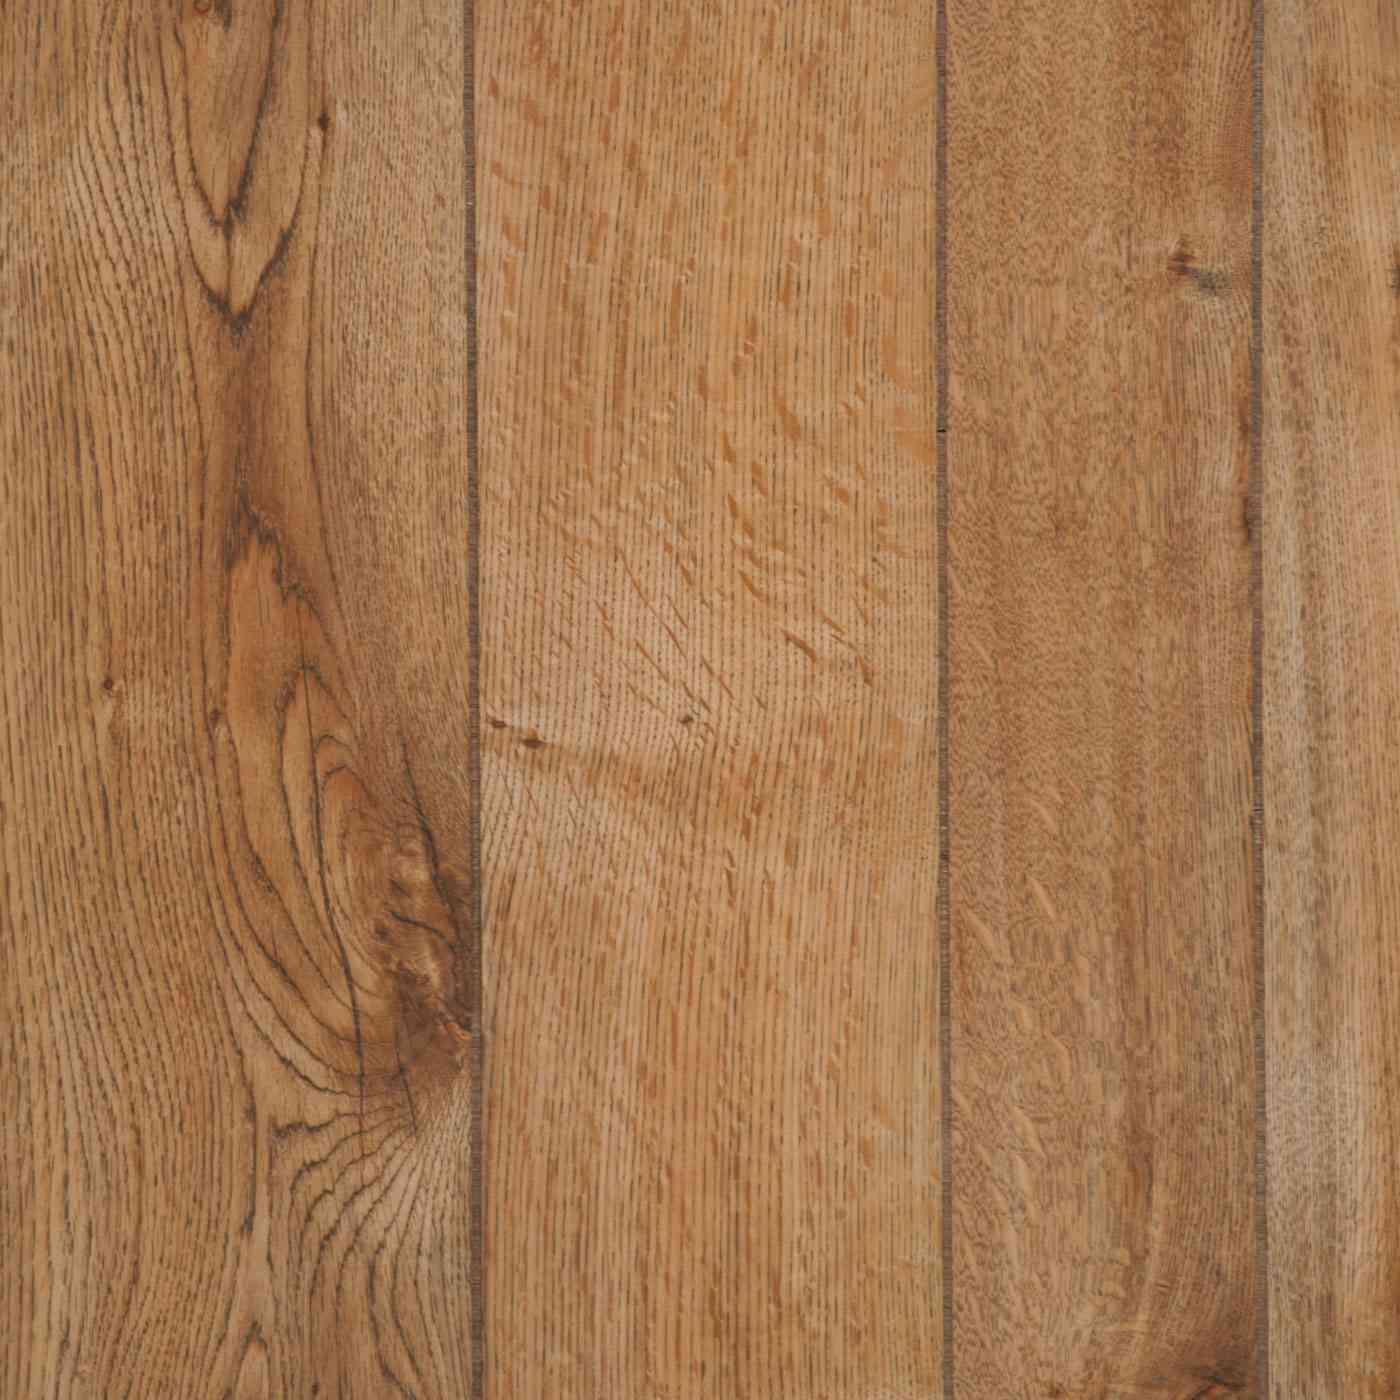 Gallant Oak Paneling 4 x 8, random width plank pattern - Wood Paneling Beadboard Red Oak Veneer Unfinished